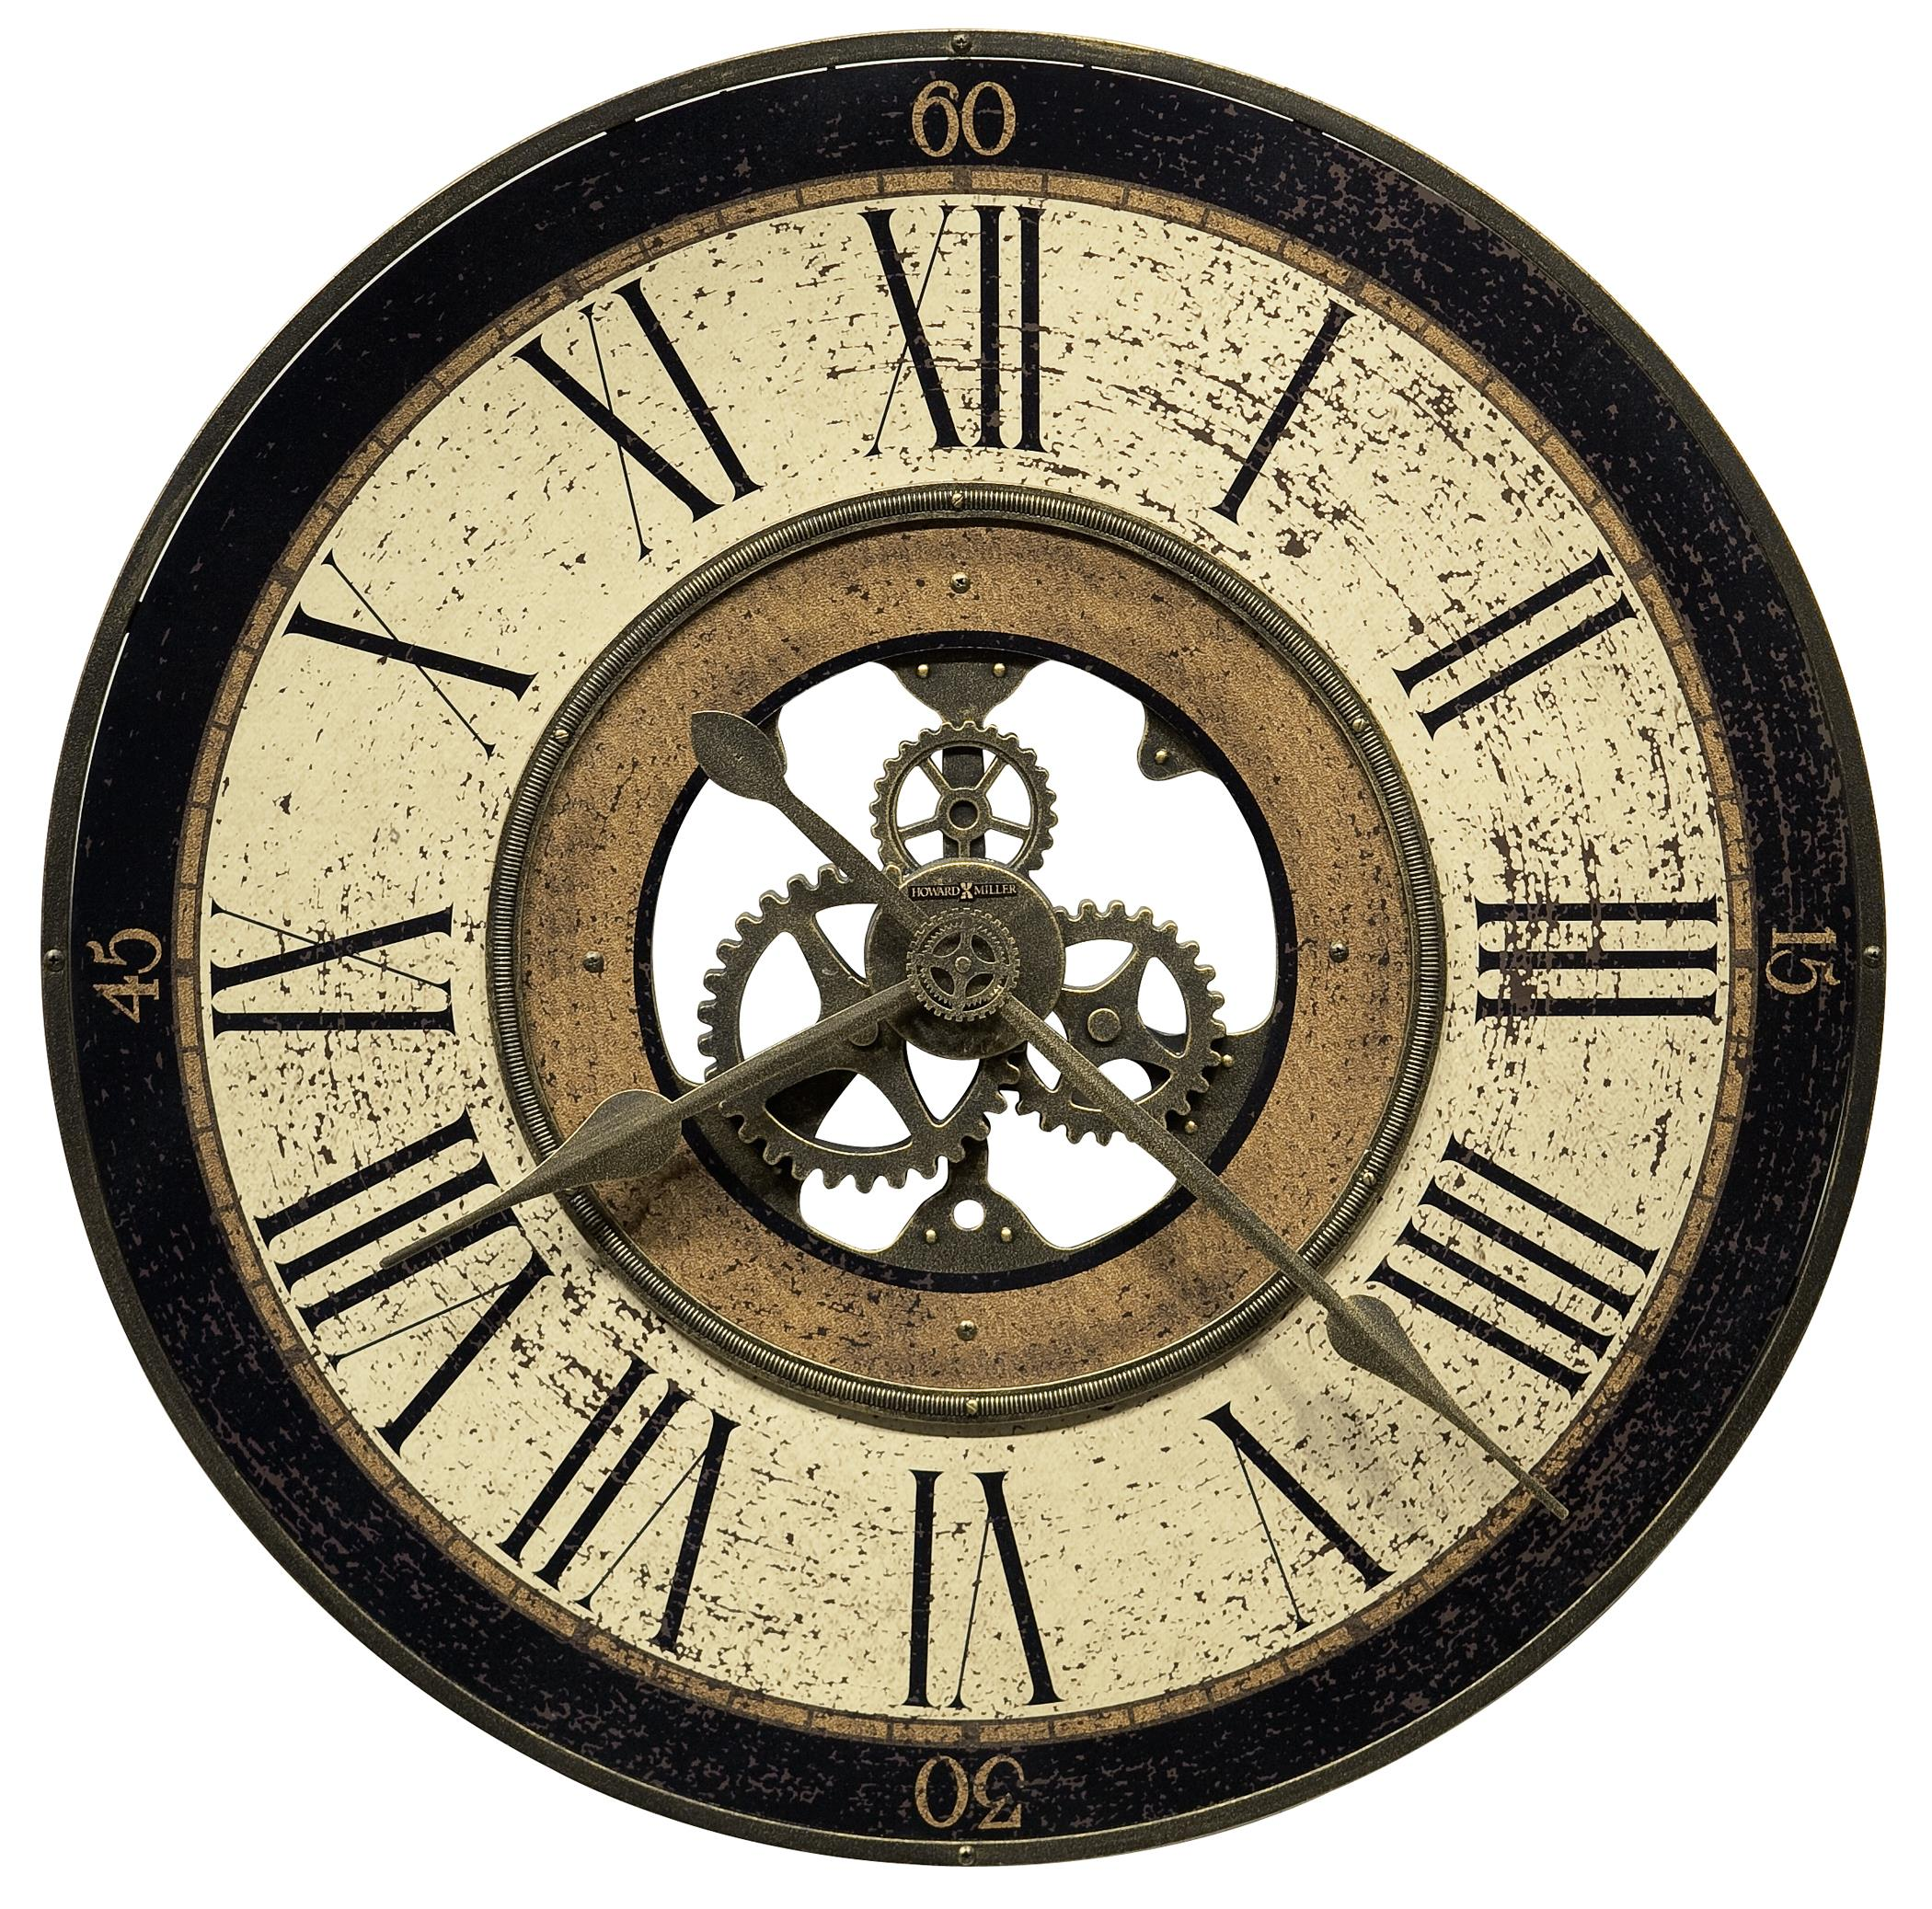 Howard Miller Wall Clocks Brass Works Wall Clock - Item Number: 625-542